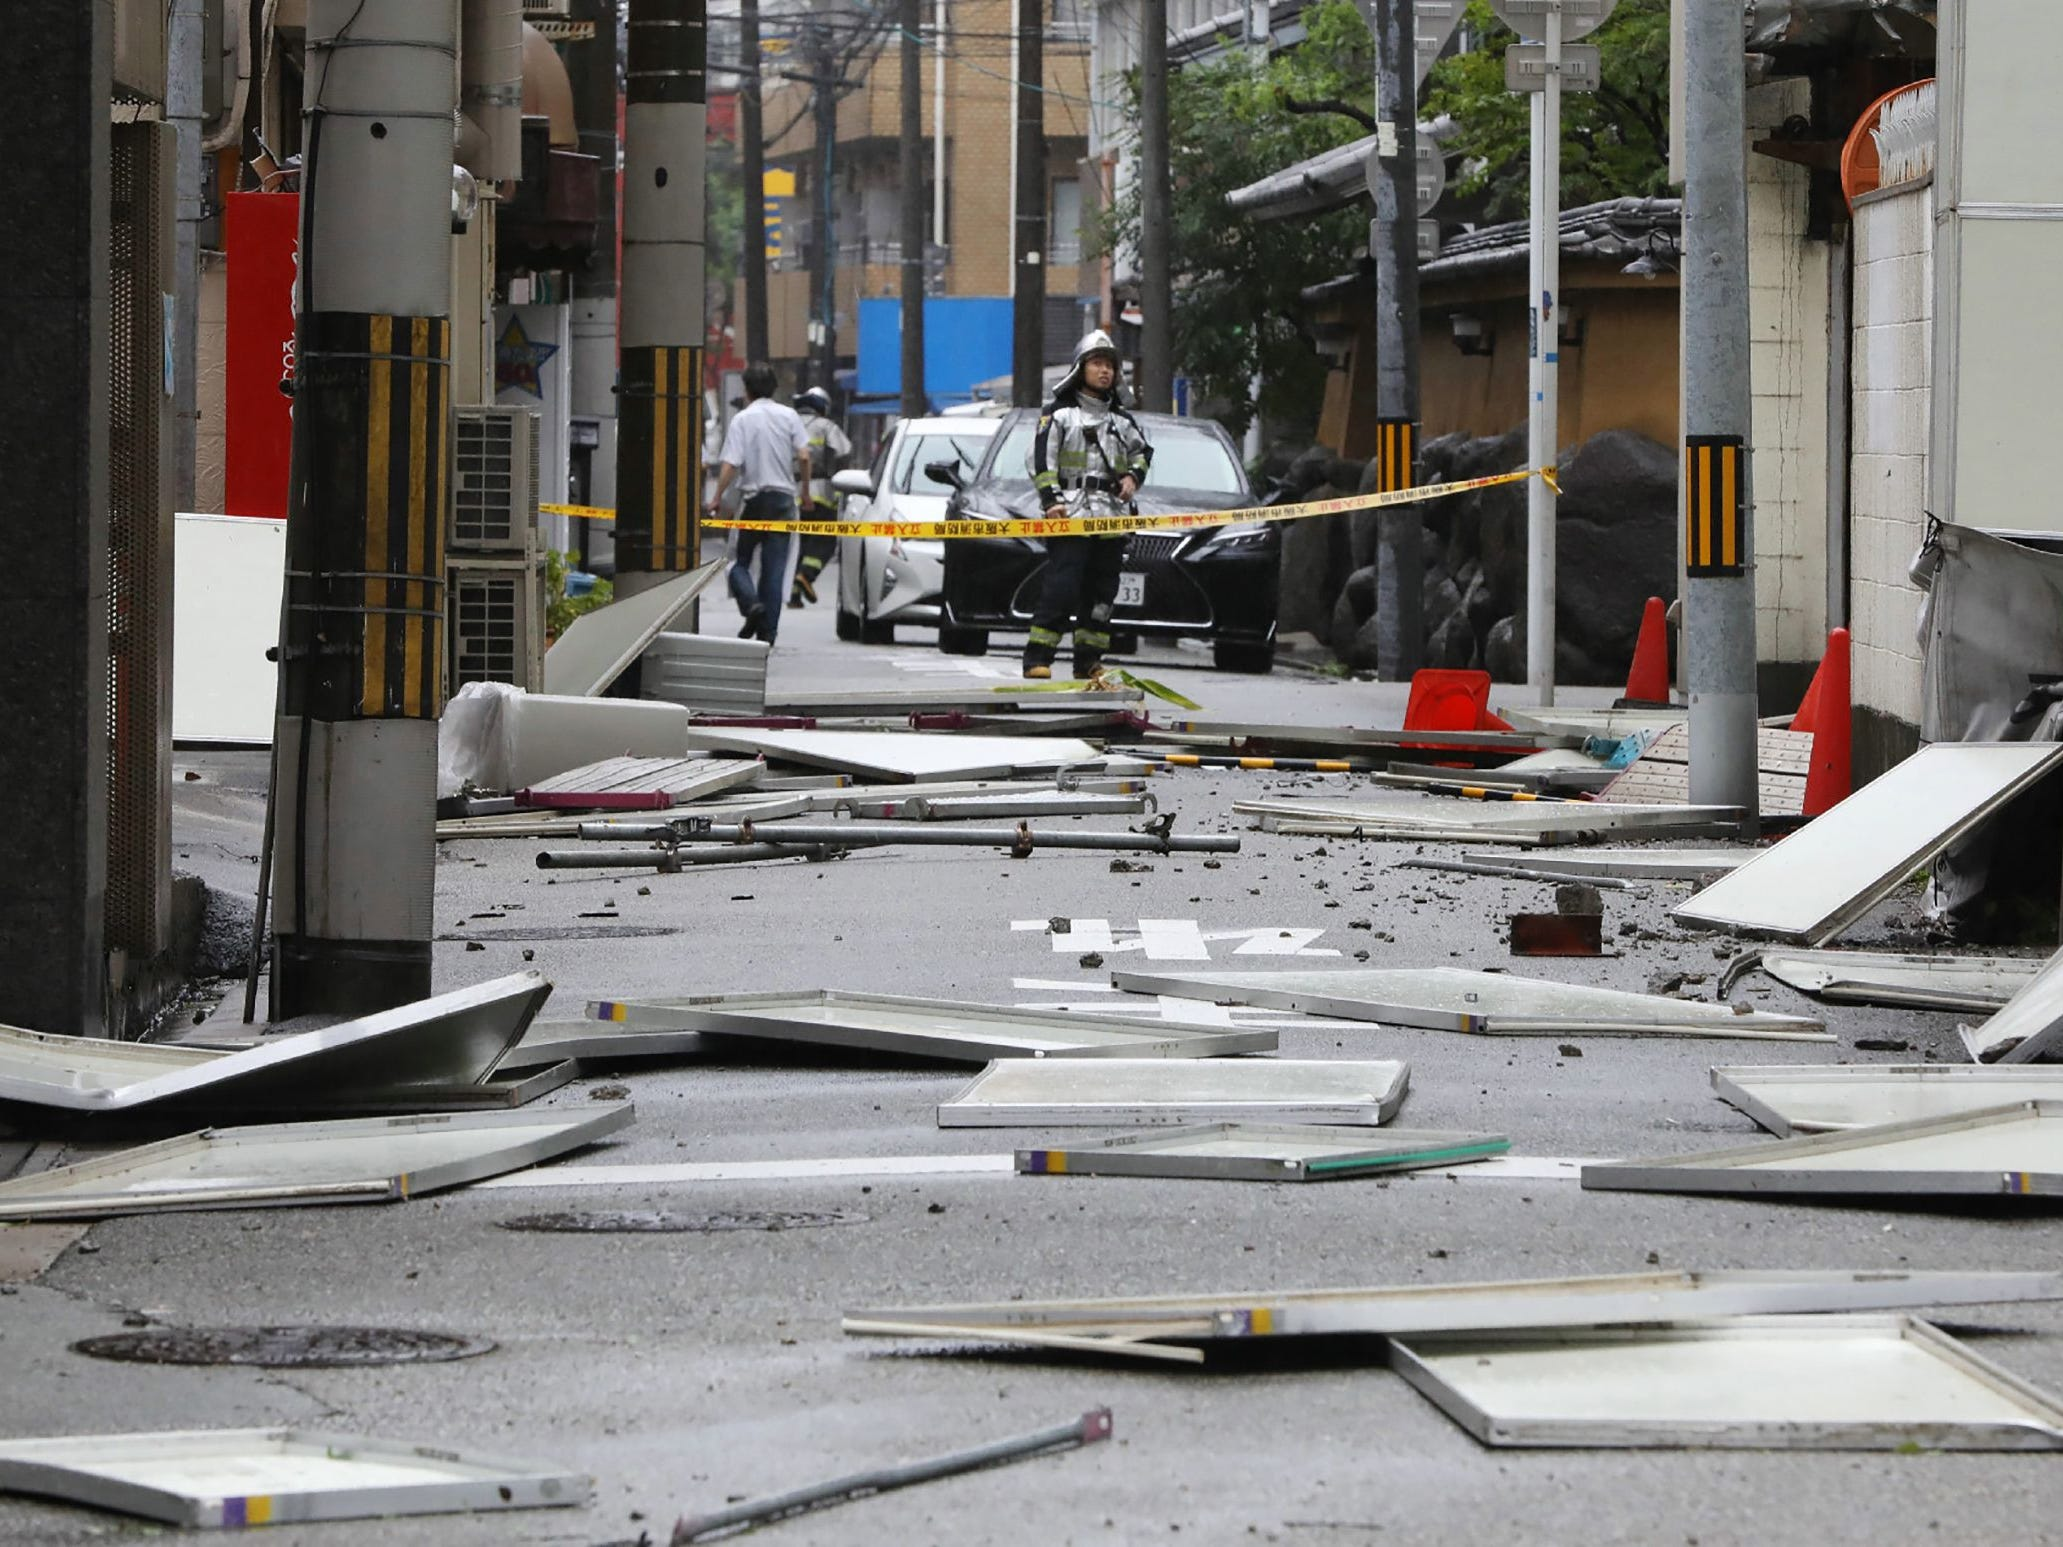 Damage from fallen panels due to weather patterns from Typhoon Jebi are seen on a street in Osaka on September 4, 2018, as the typhoon made landfall around midday in southwestern Japan. - The strongest typhoon to hit Japan in 25 years made landfall on September 4, the country's weather agency said, bringing violent winds and heavy rainfall that prompted evacuation warnings. (Photo by JIJI PRESS / JIJI PRESS / AFP) / Japan OUTJIJI PRESS/AFP/Getty Images ORIG FILE ID: AFP_18U2MU